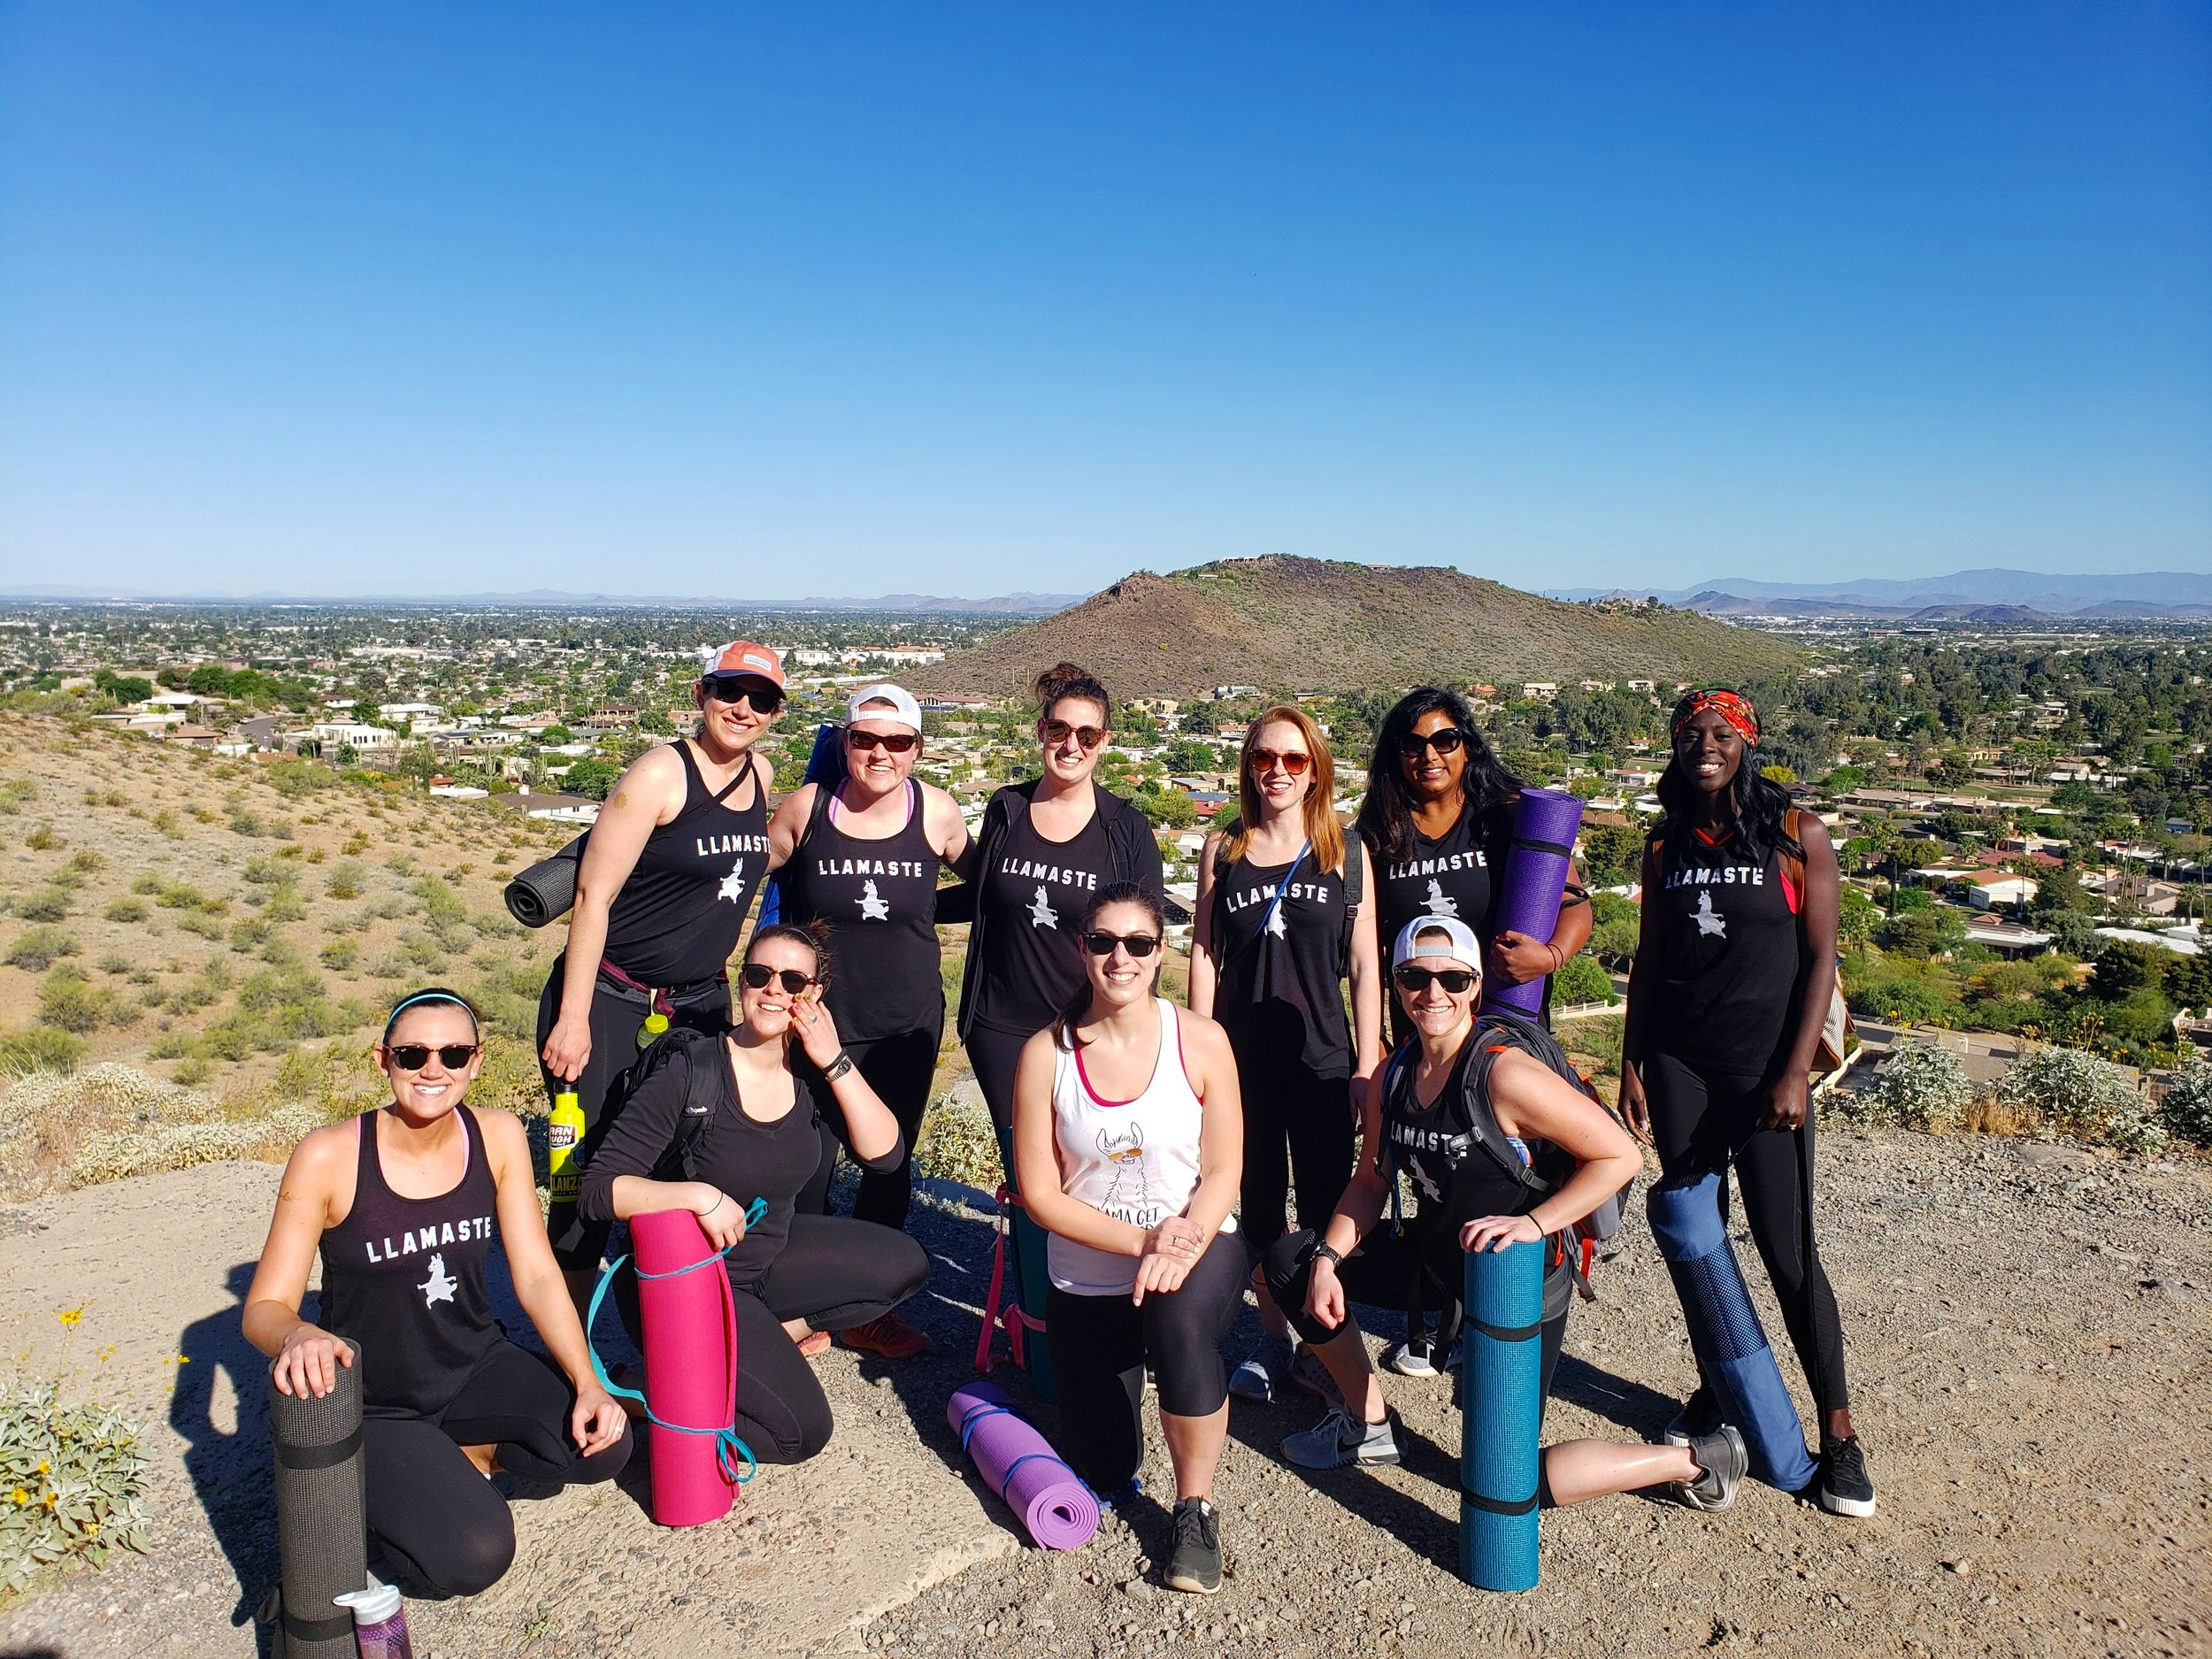 Things to see and do in Phoenix, Arizona